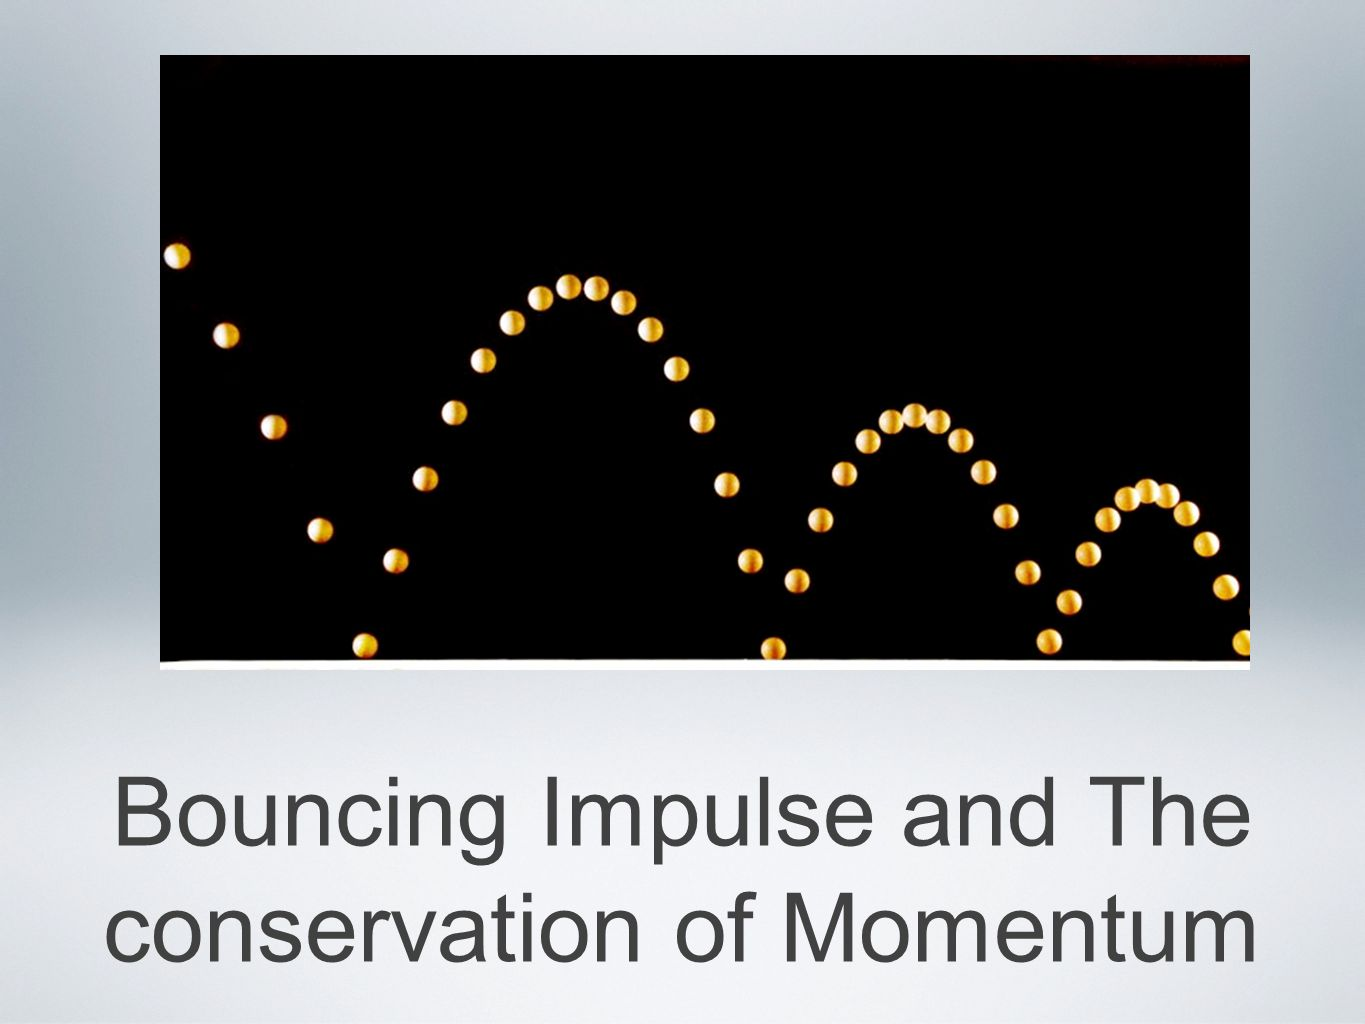 Bouncing Impulse When something bounces there is more impulse involved than if the object just falls and stops.